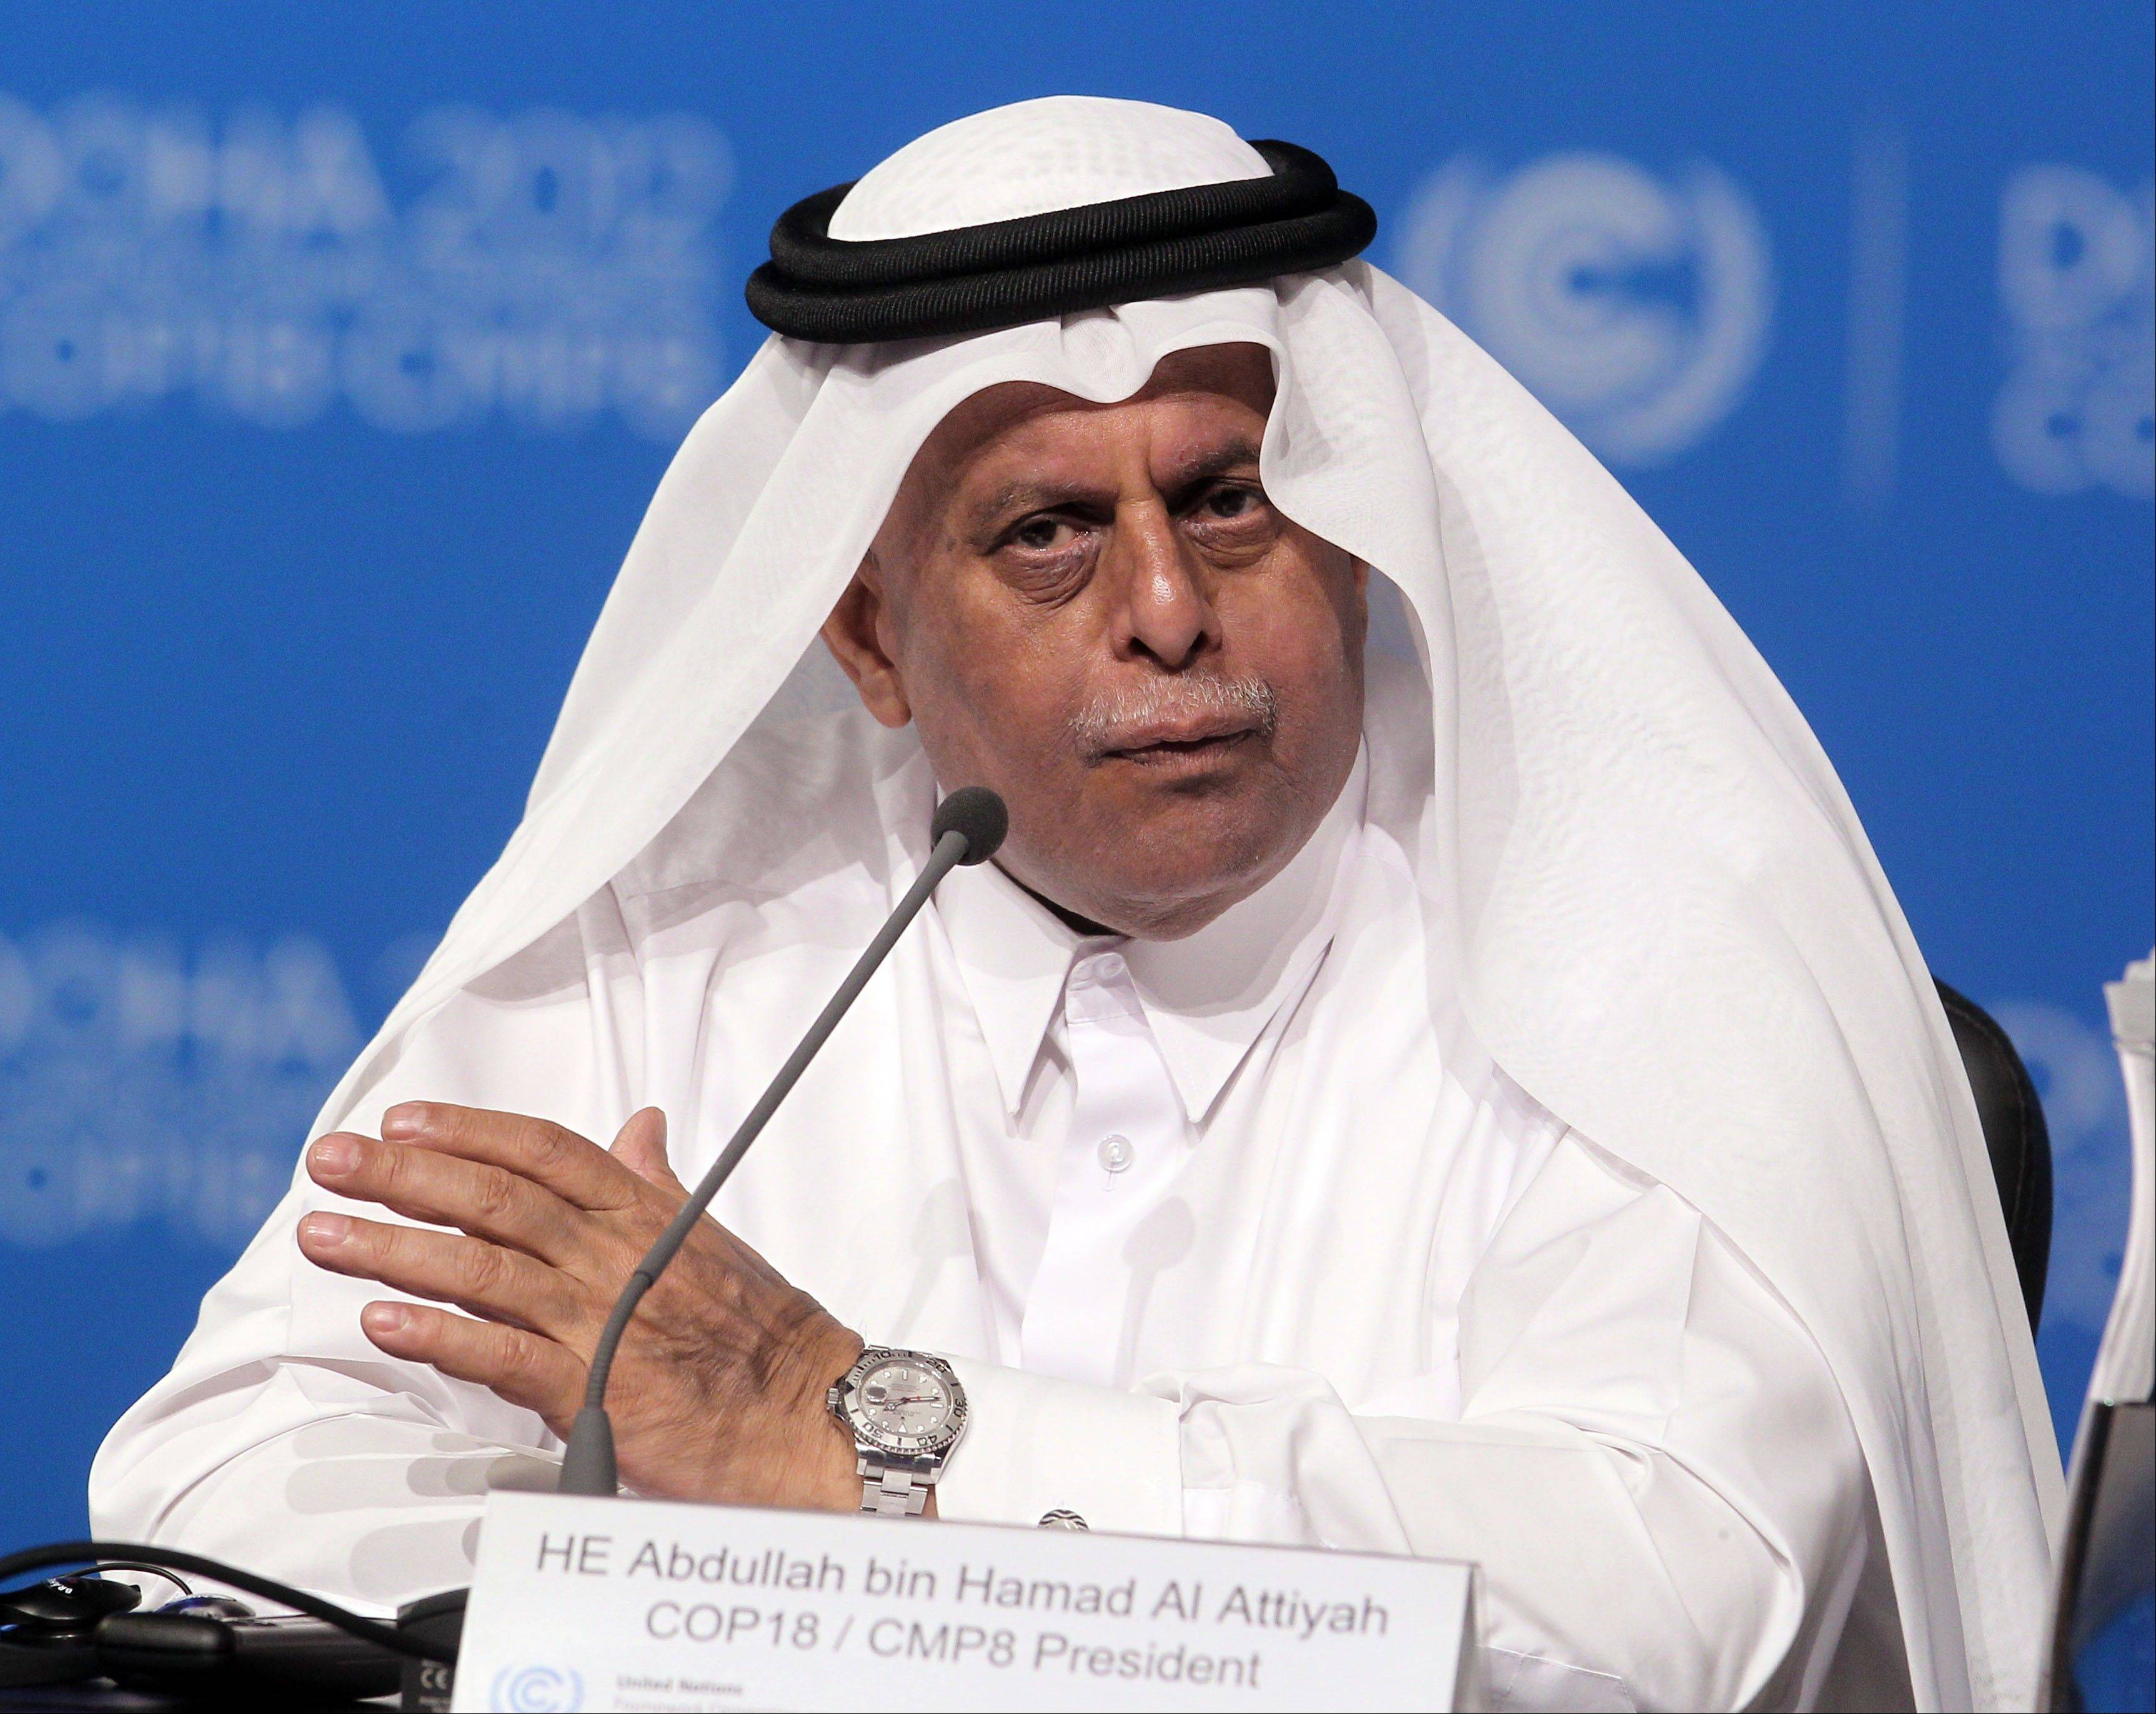 Qatar's Deputy Prime Minister Abdullah bin Hamad al-Attiyah speaks at the opening session of the United Nations Climate Change conference in Doha, Qatar, Monday, Nov. 26, 2012. U.N. talks on a new climate pact resumed Monday in oil and gas-rich Qatar, where negotiators from nearly 200 countries will discuss fighting global warming and helping poor nations adapt to it.